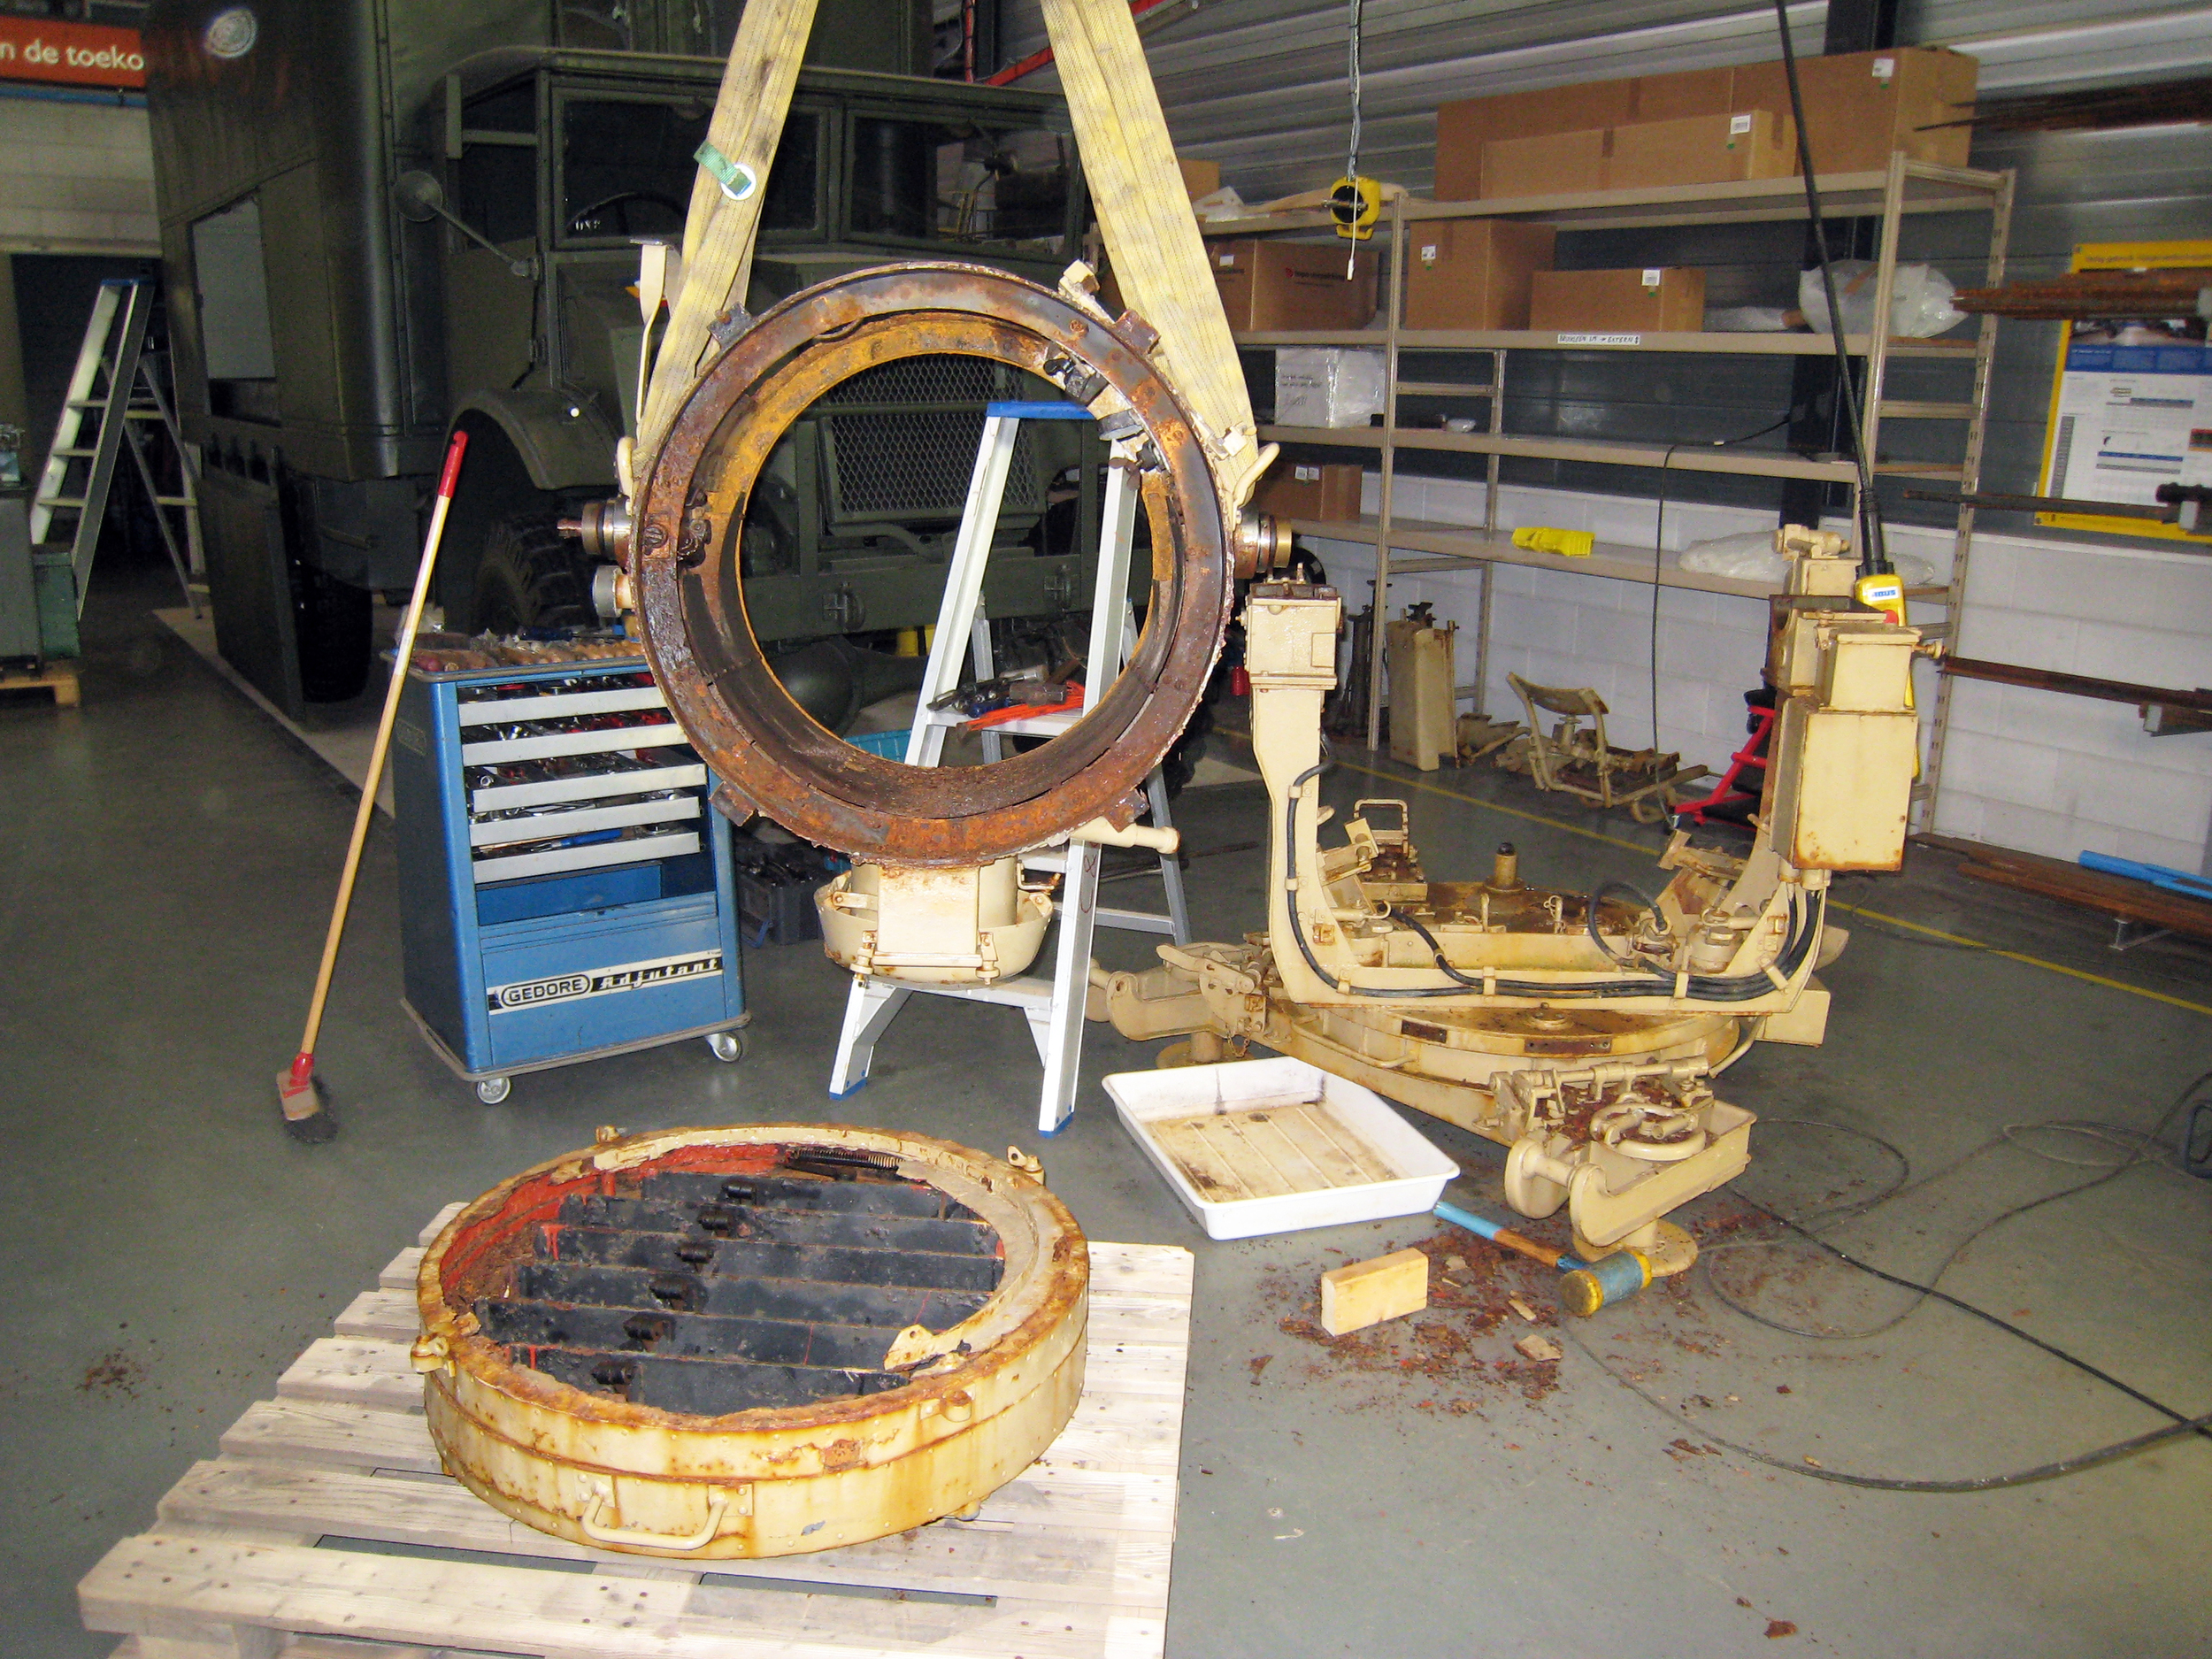 disassembly of German WW2 searchlight